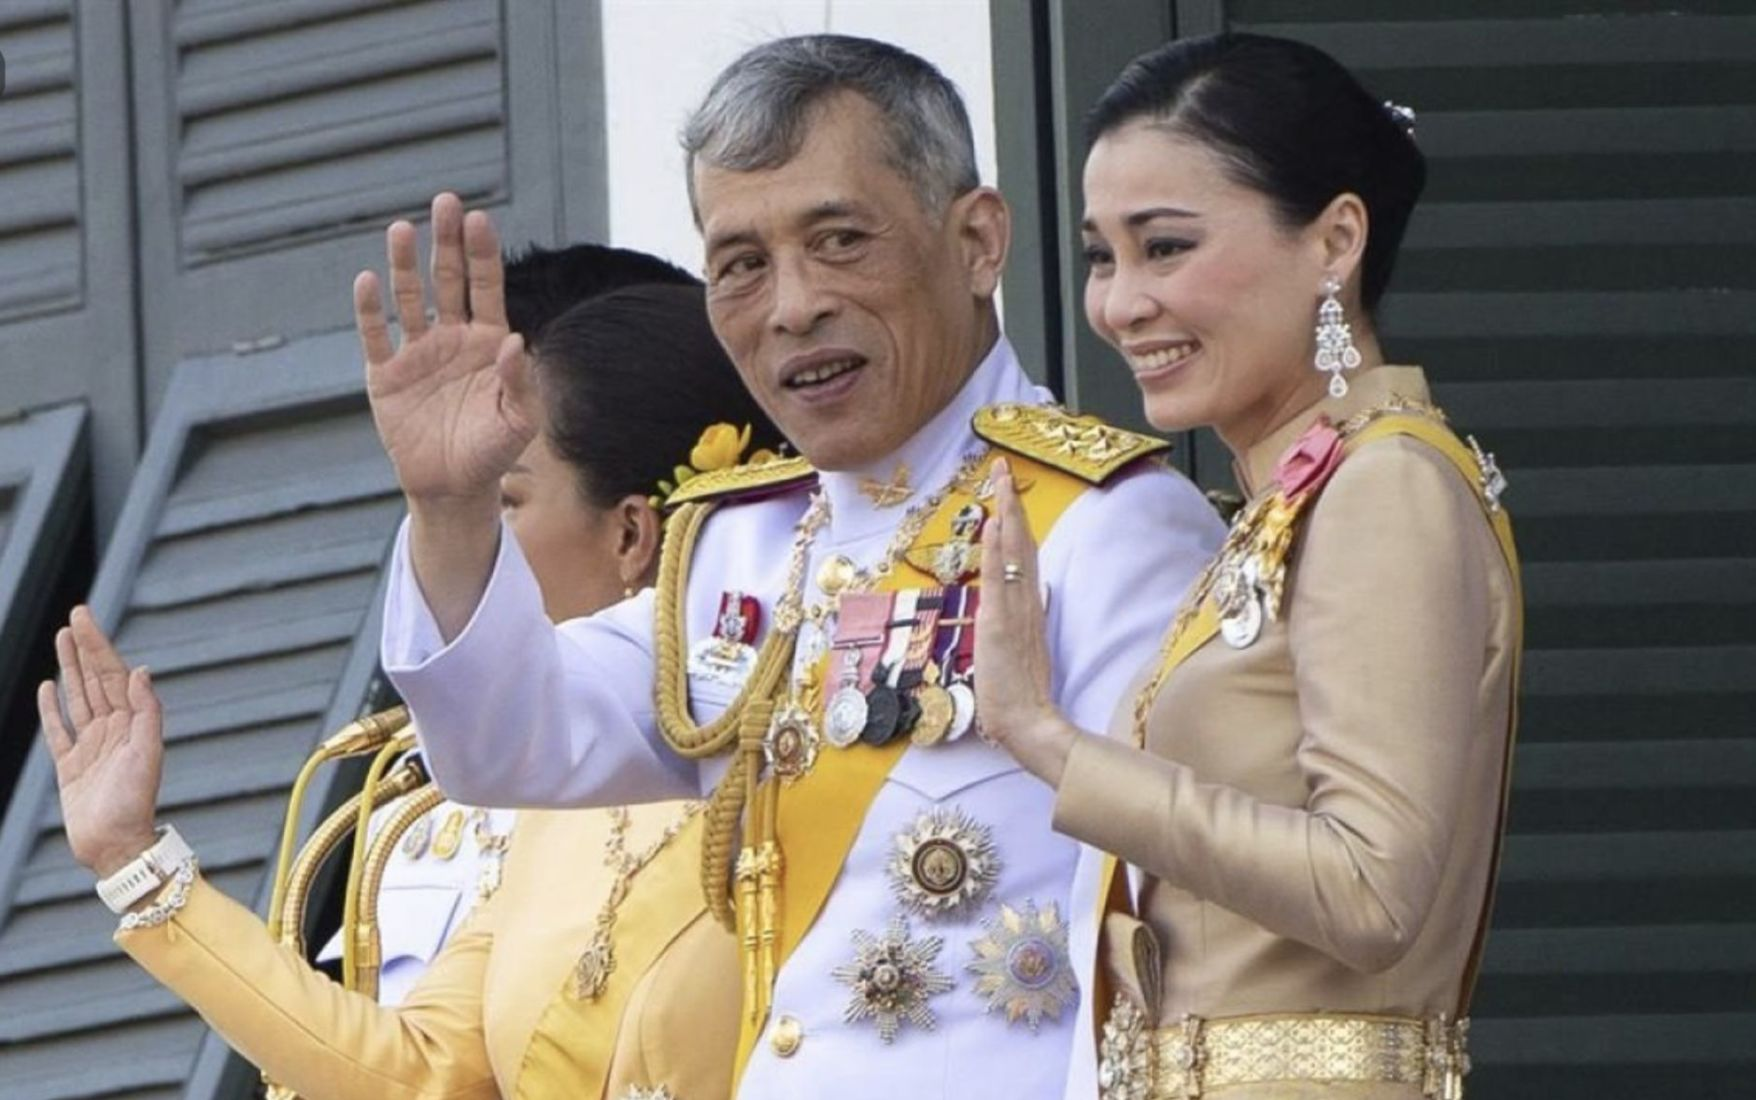 Best wishes to HM King of Thailand on this auspicious occasion | Thaiger